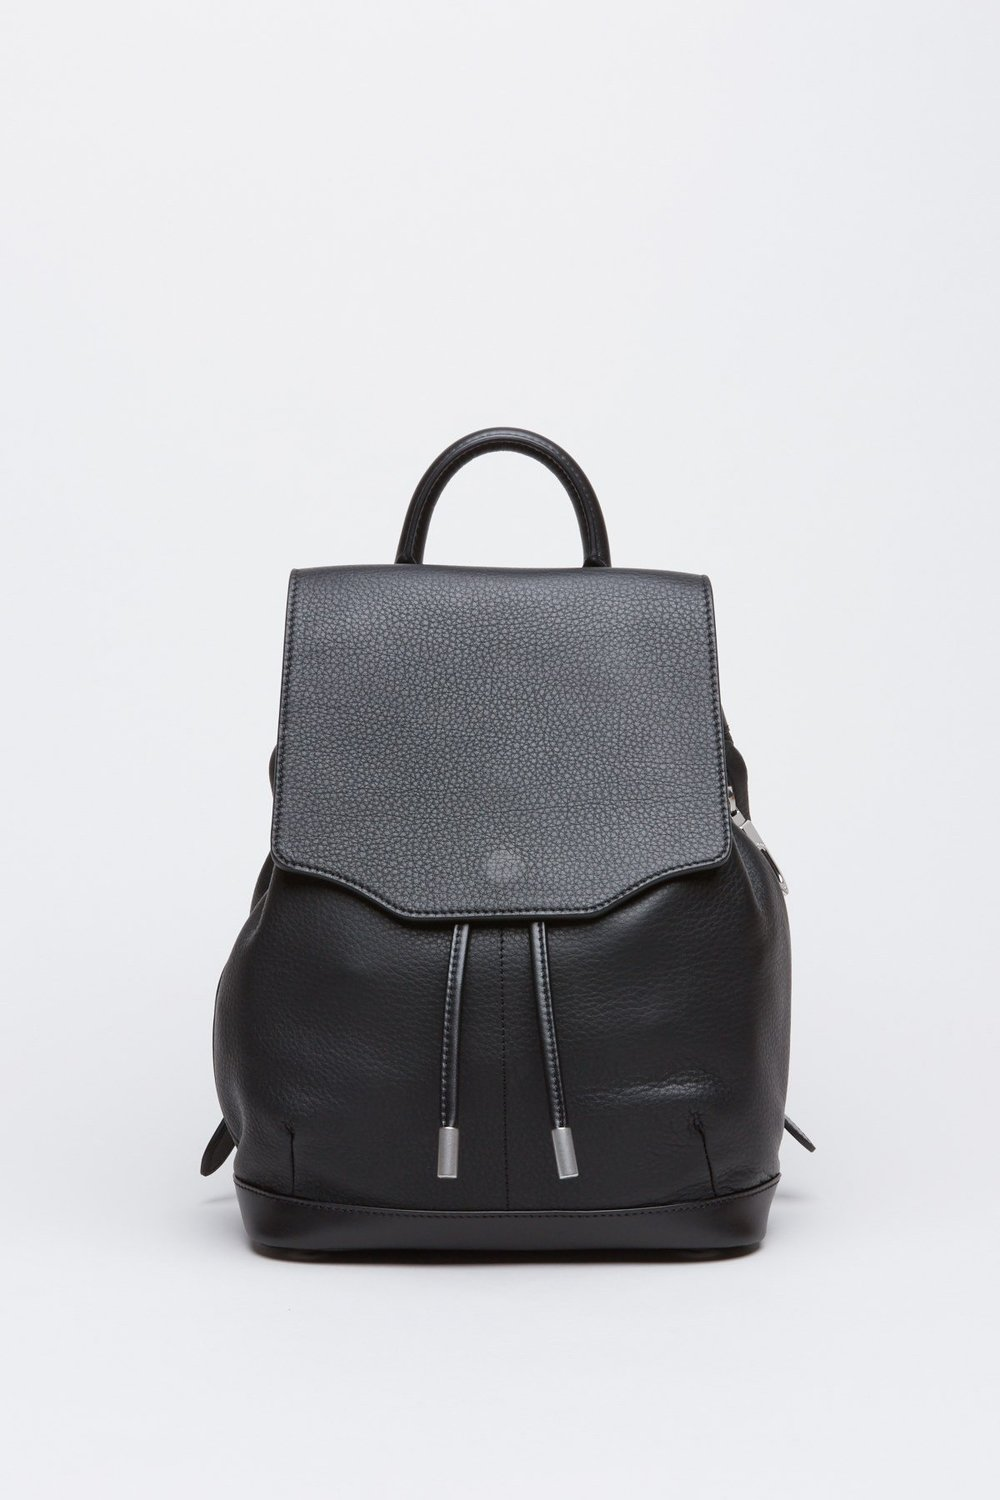 Rag & Bone Mini pilot backpack $855